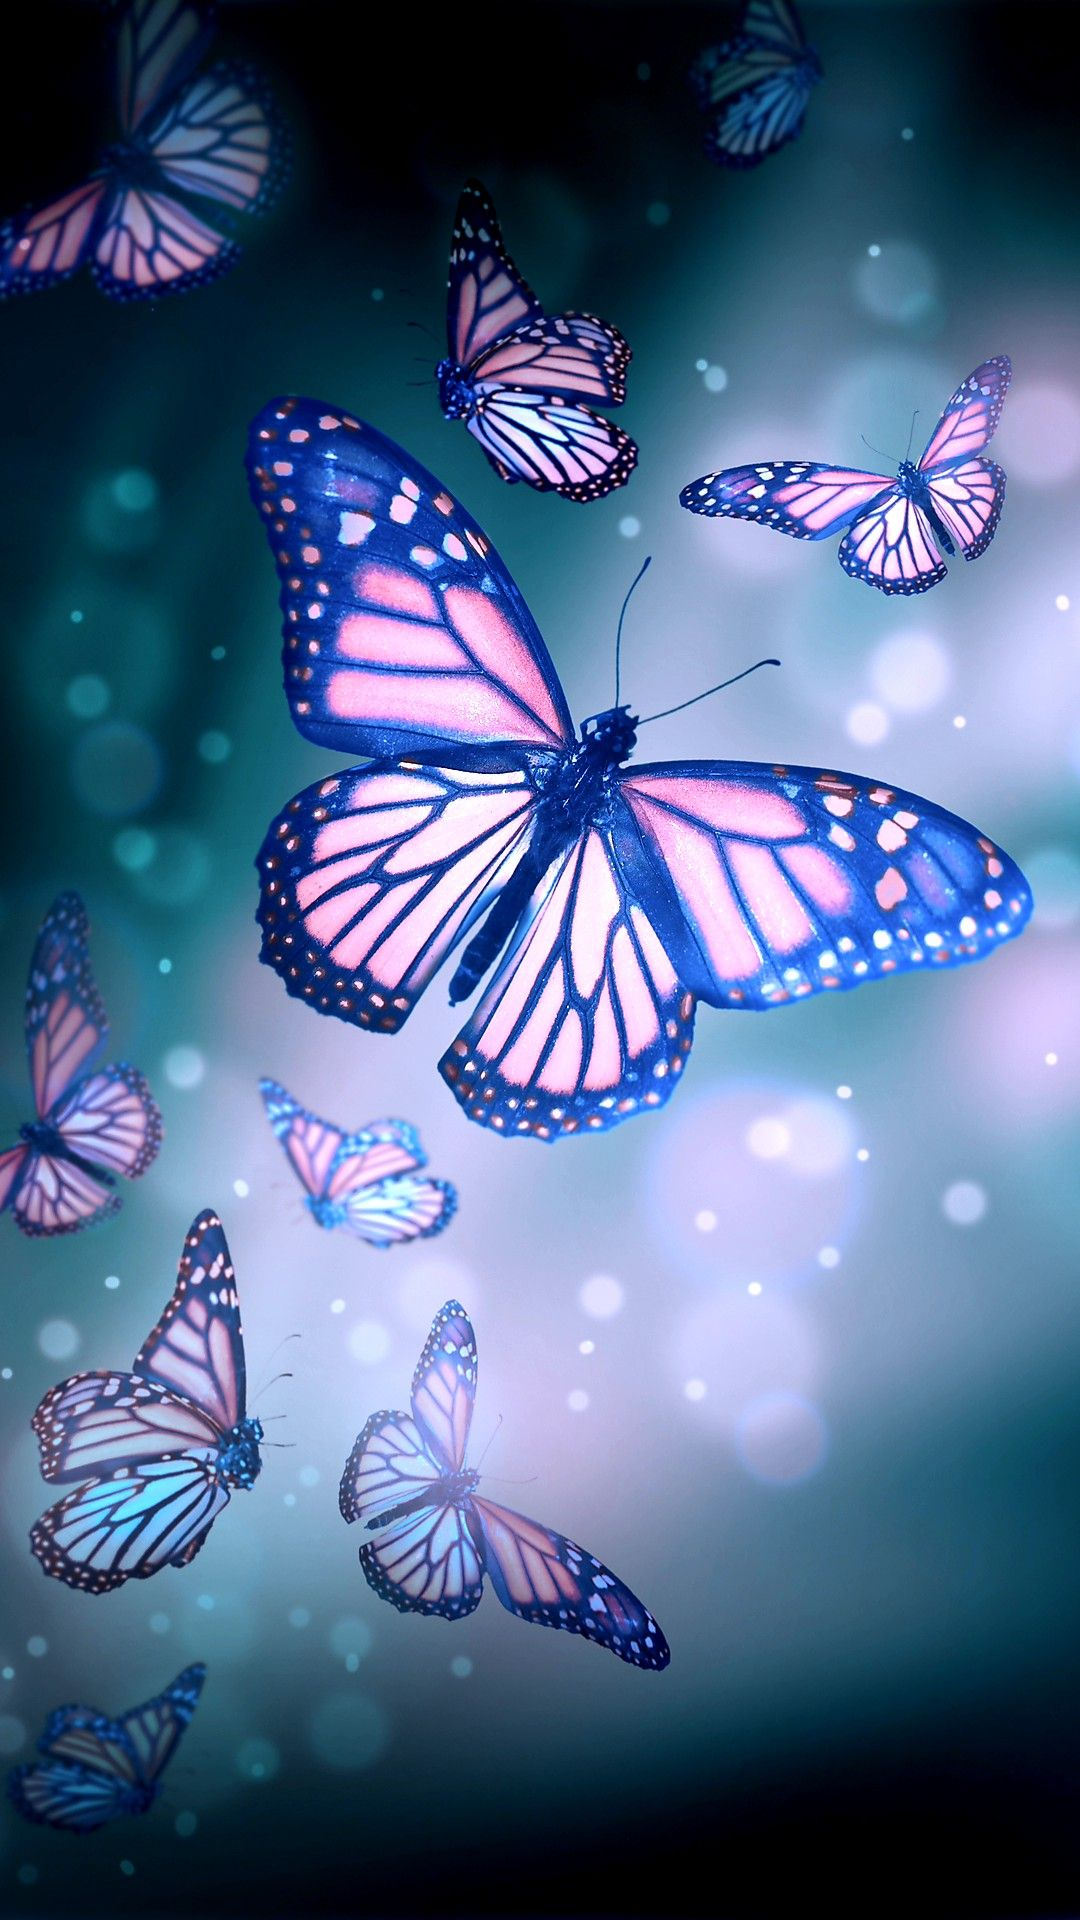 Pin By Jj S Passions On Butterfly Dragonfly Wallpaper 1 Butterfly Wallpaper Iphone Butterfly Wallpaper Butterfly Pictures